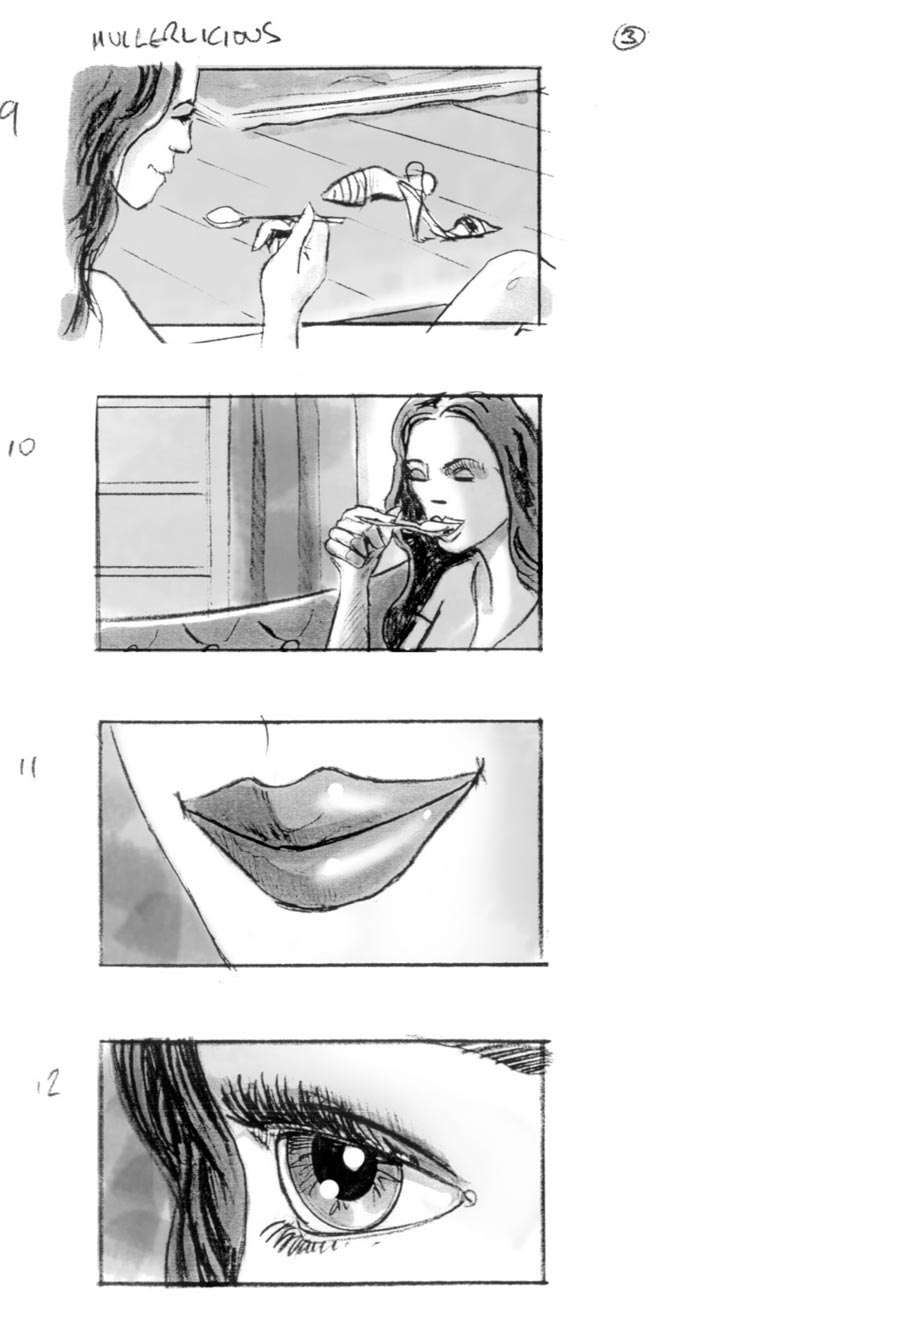 douglas ingram, storyboard art, mullerlicious commercial